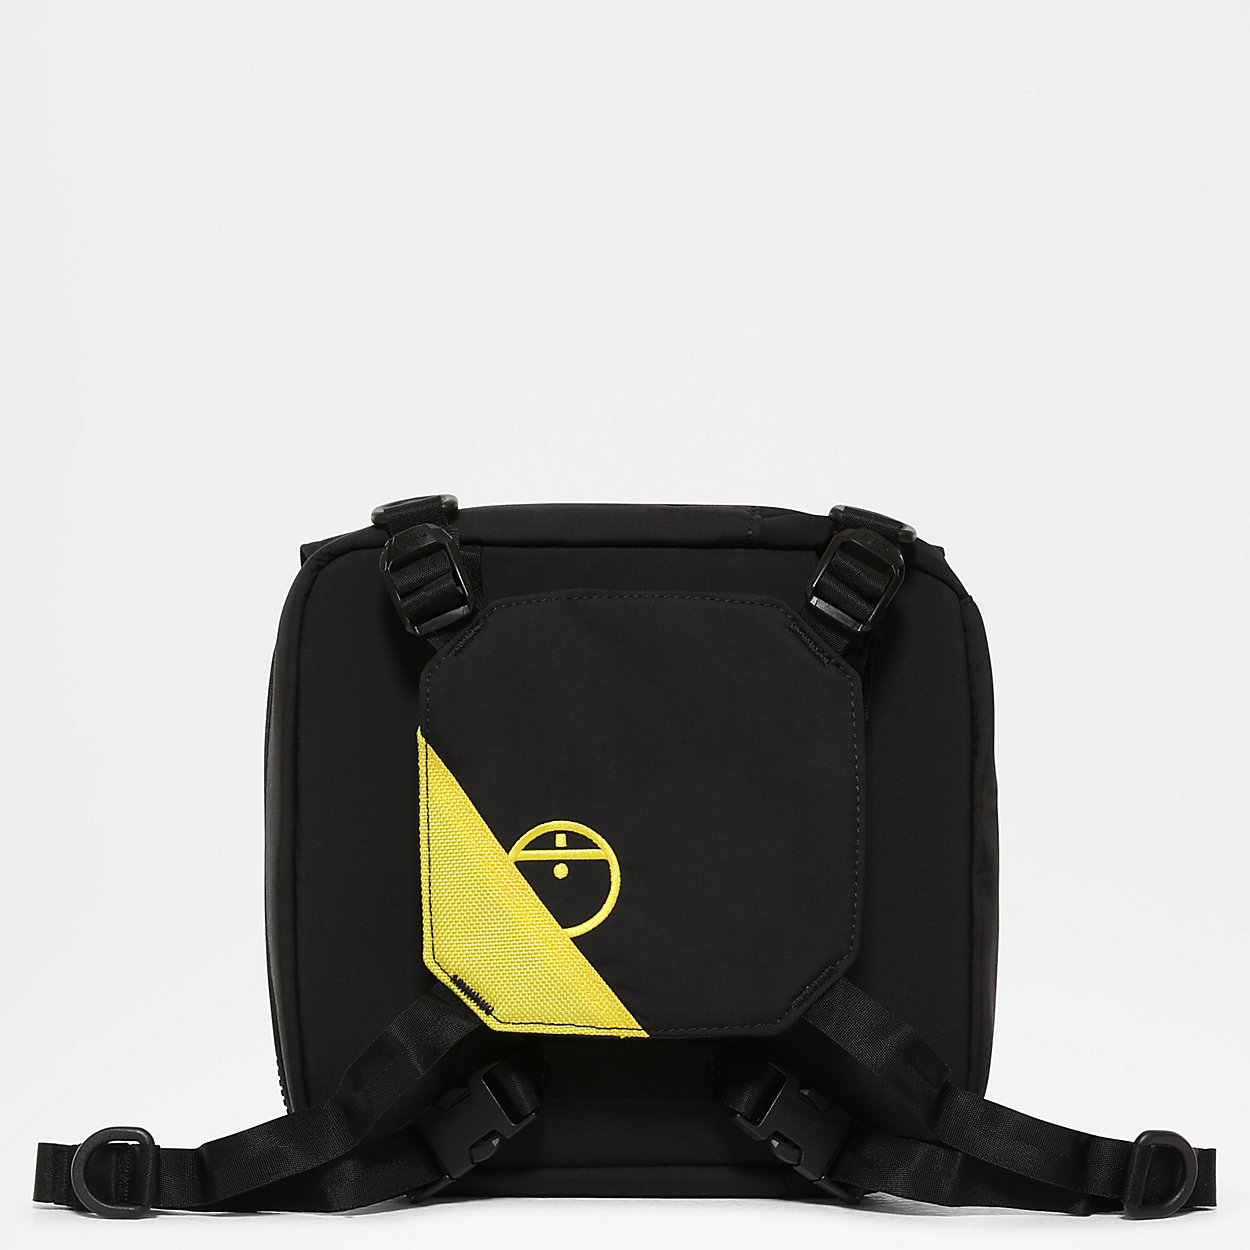 UNISEX STEEP TECH CHEST PACK